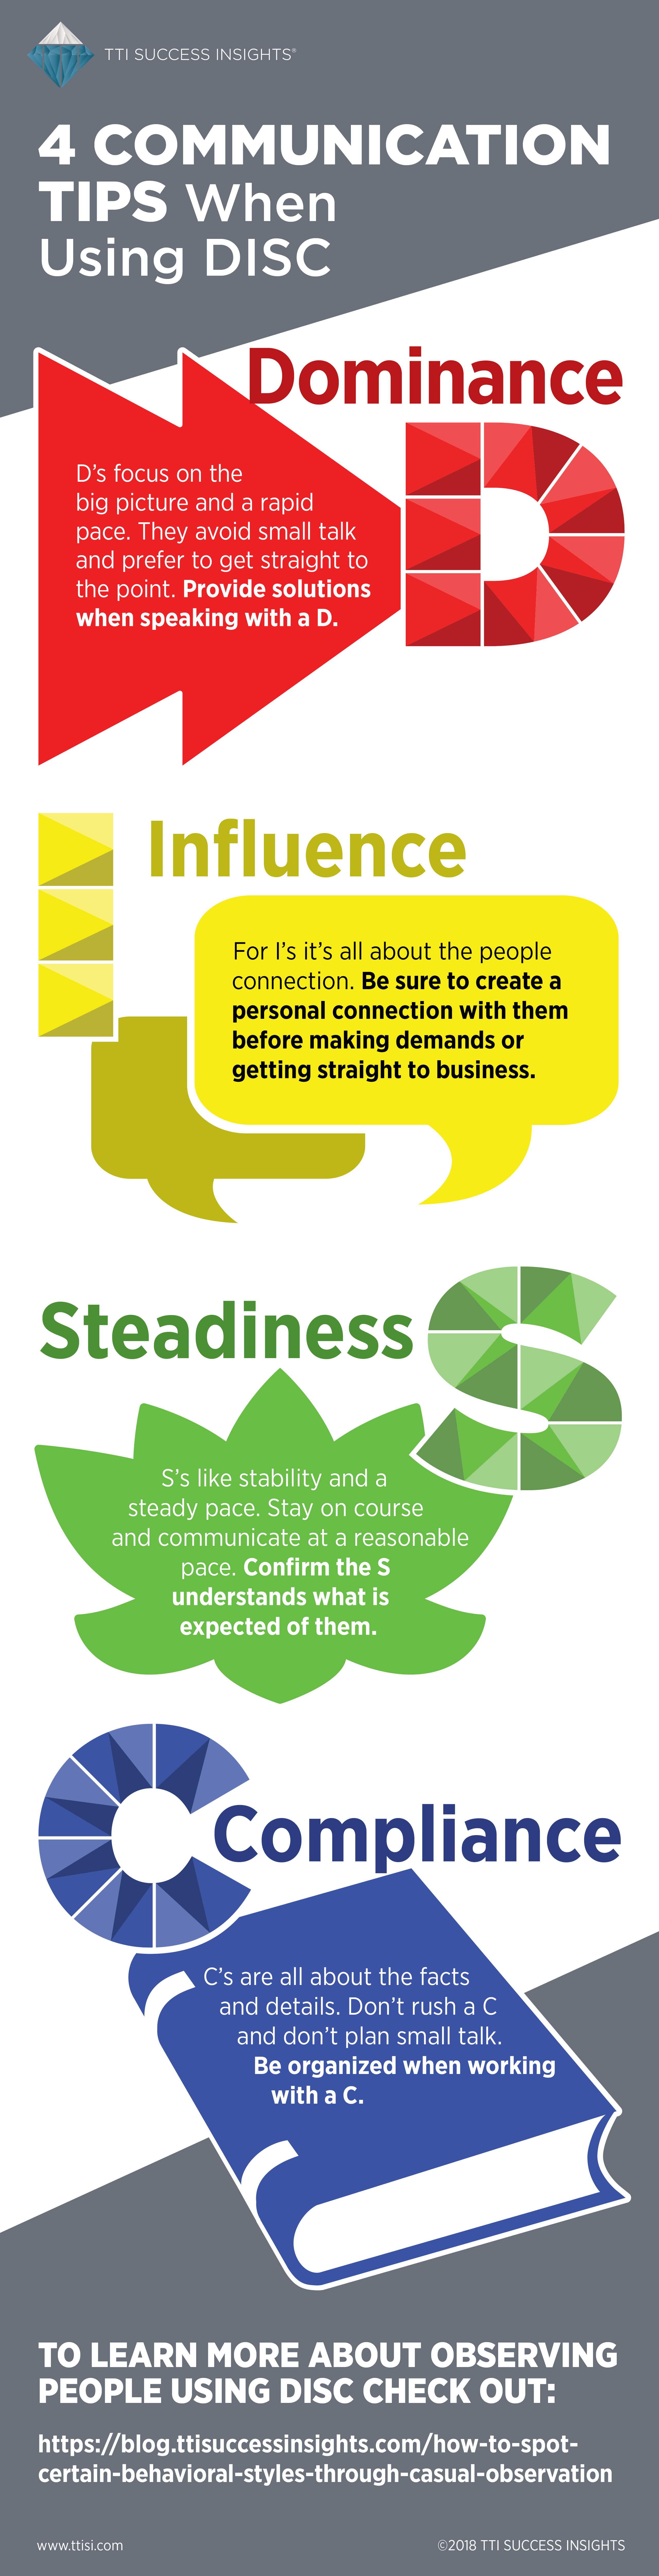 May18_Infographic_DISC_CommunicationMistakes